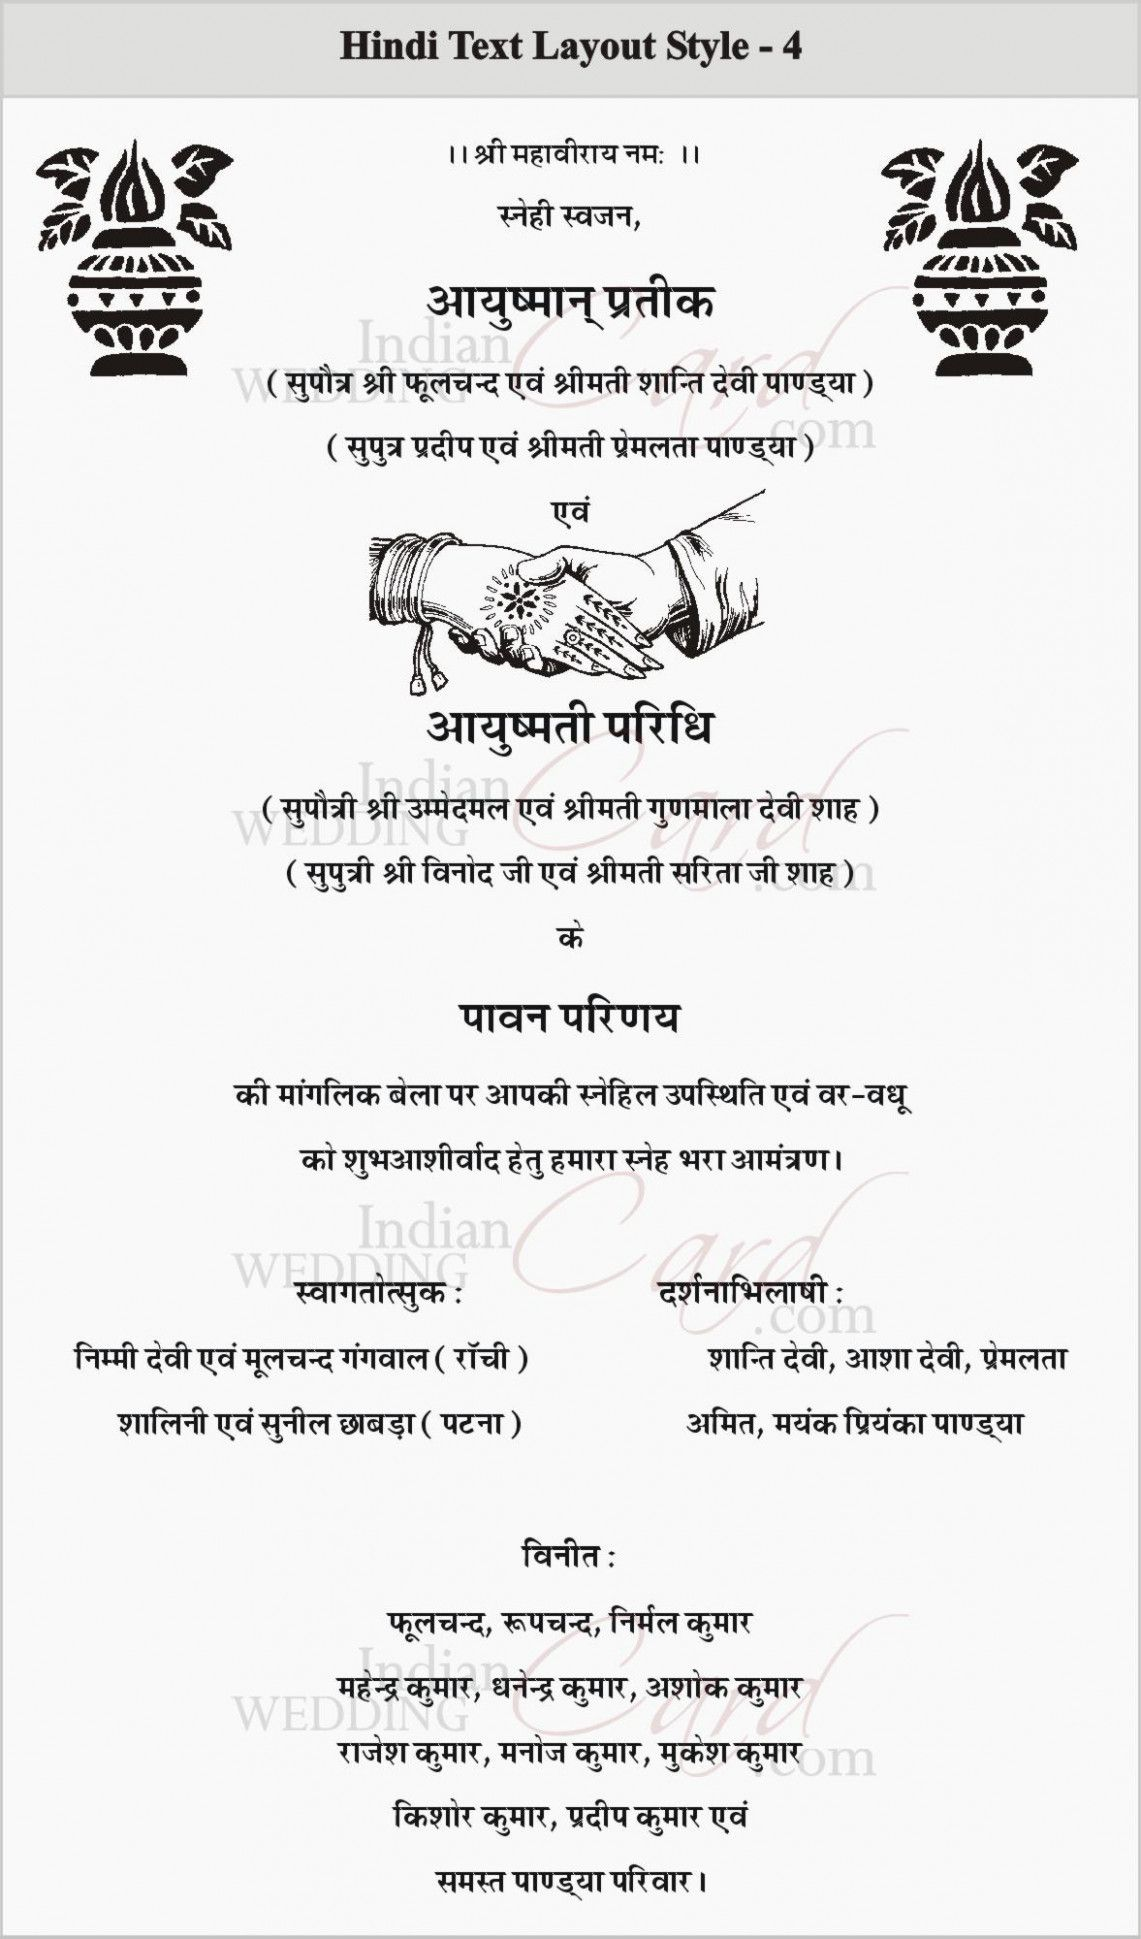 Marriage Card Content In Hindi in 4  Hindu wedding invitation